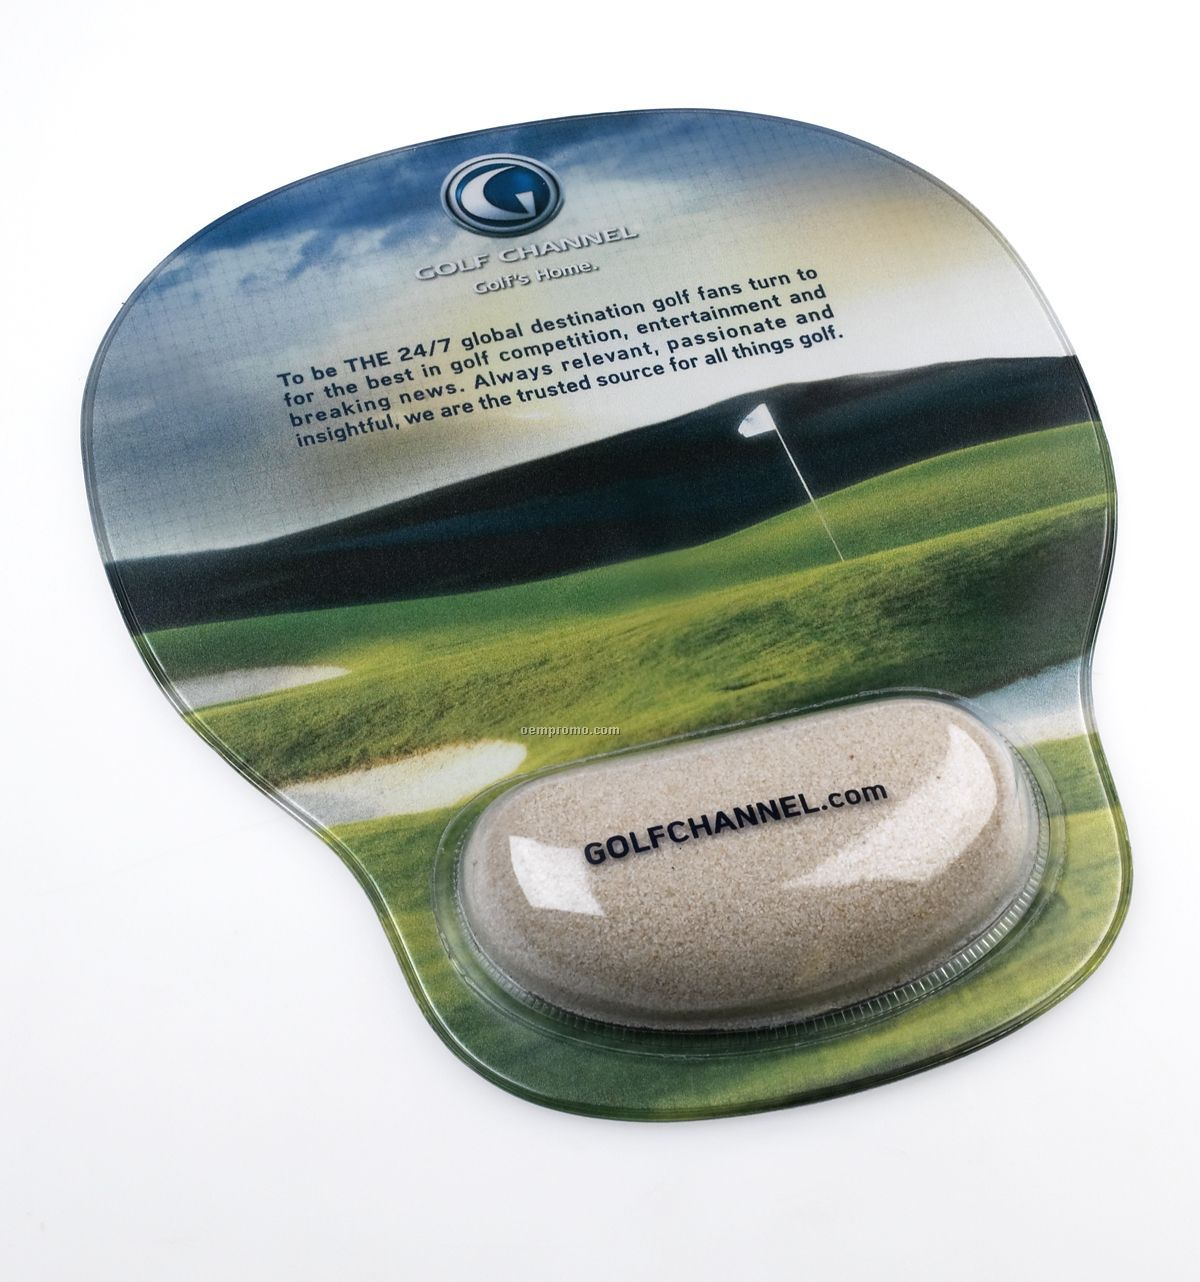 Combo-padz Mousepad With Bunker Sand Filled Wrist Rest